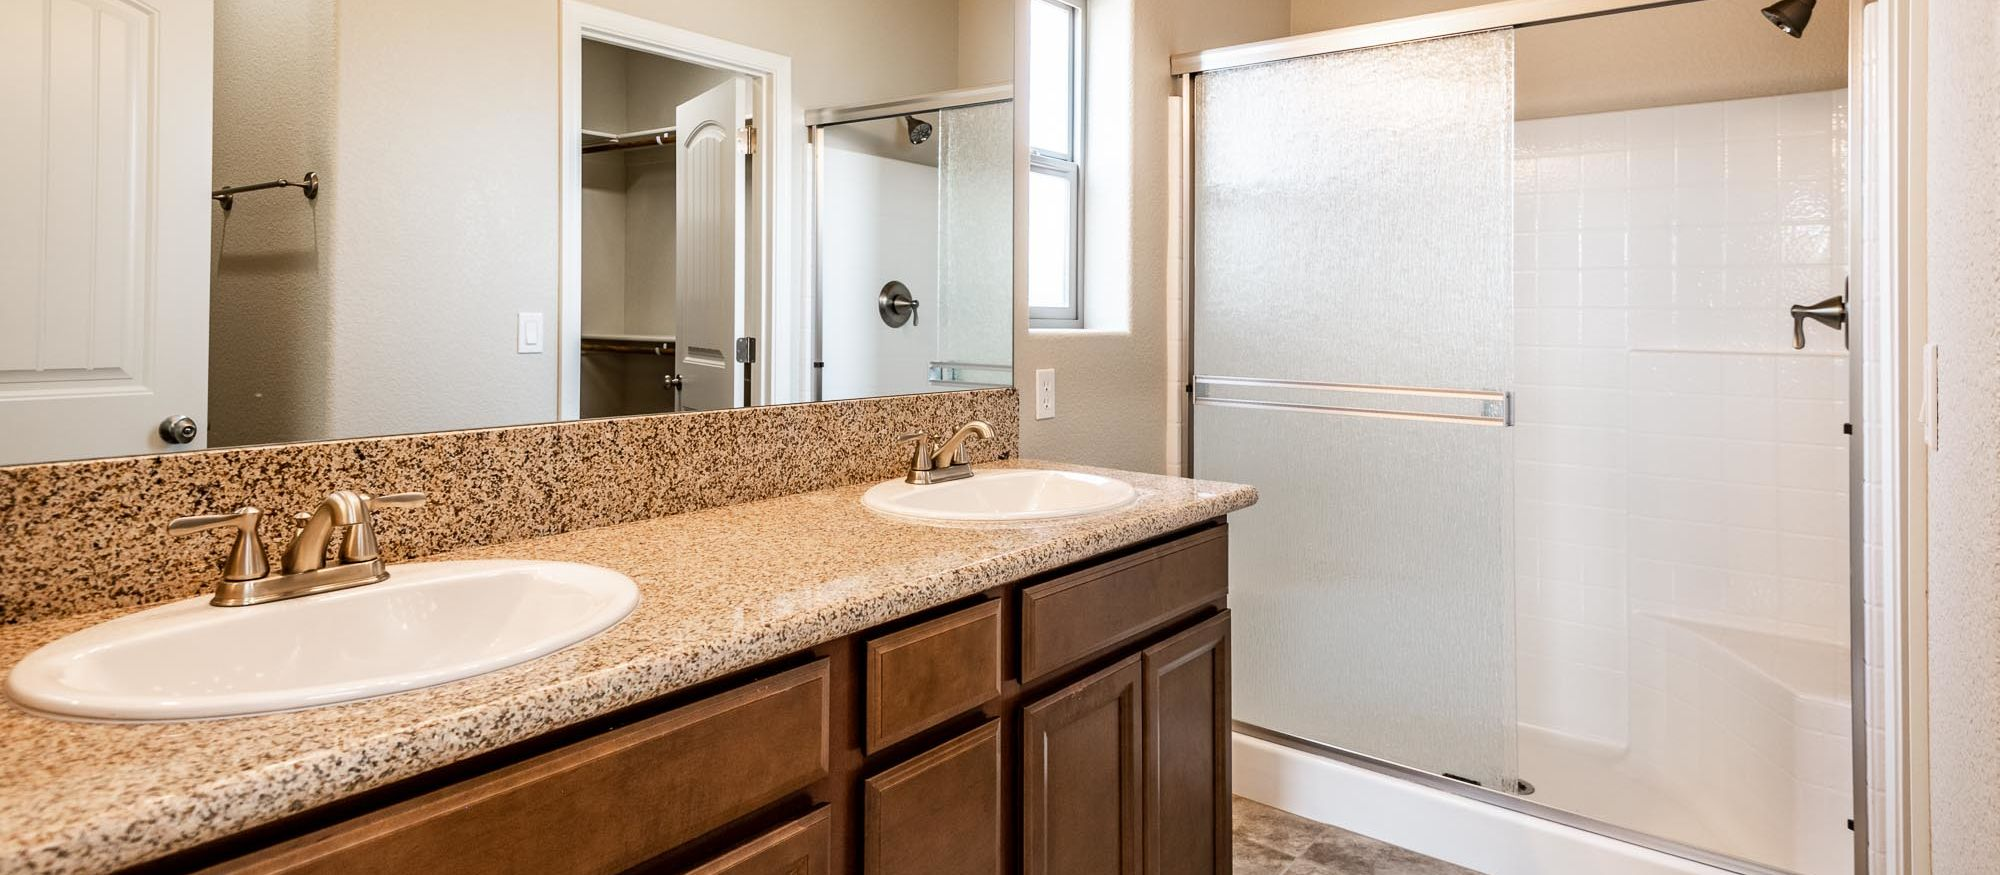 Bathroom featured in the Desert Rose 1706 By Angle Homes in Kingman-Lake Havasu City, AZ